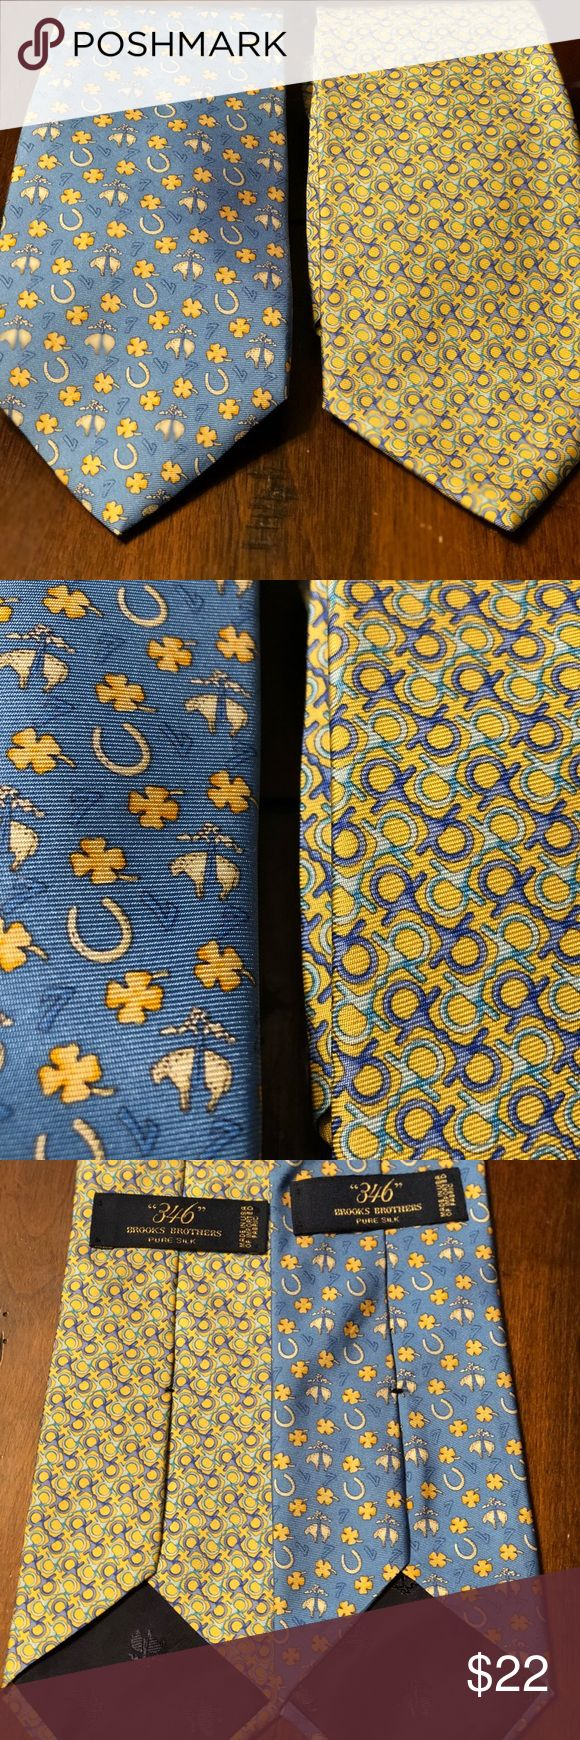 "(2) Brooks Brothers 346 Tie Pure Silk 2 Very Exquisite Brooks Brothers Ties ""346"" Pure Silk. Excellent Condition. Both Ties Included In Purchase. Brooks Brothers Accessories Ties"